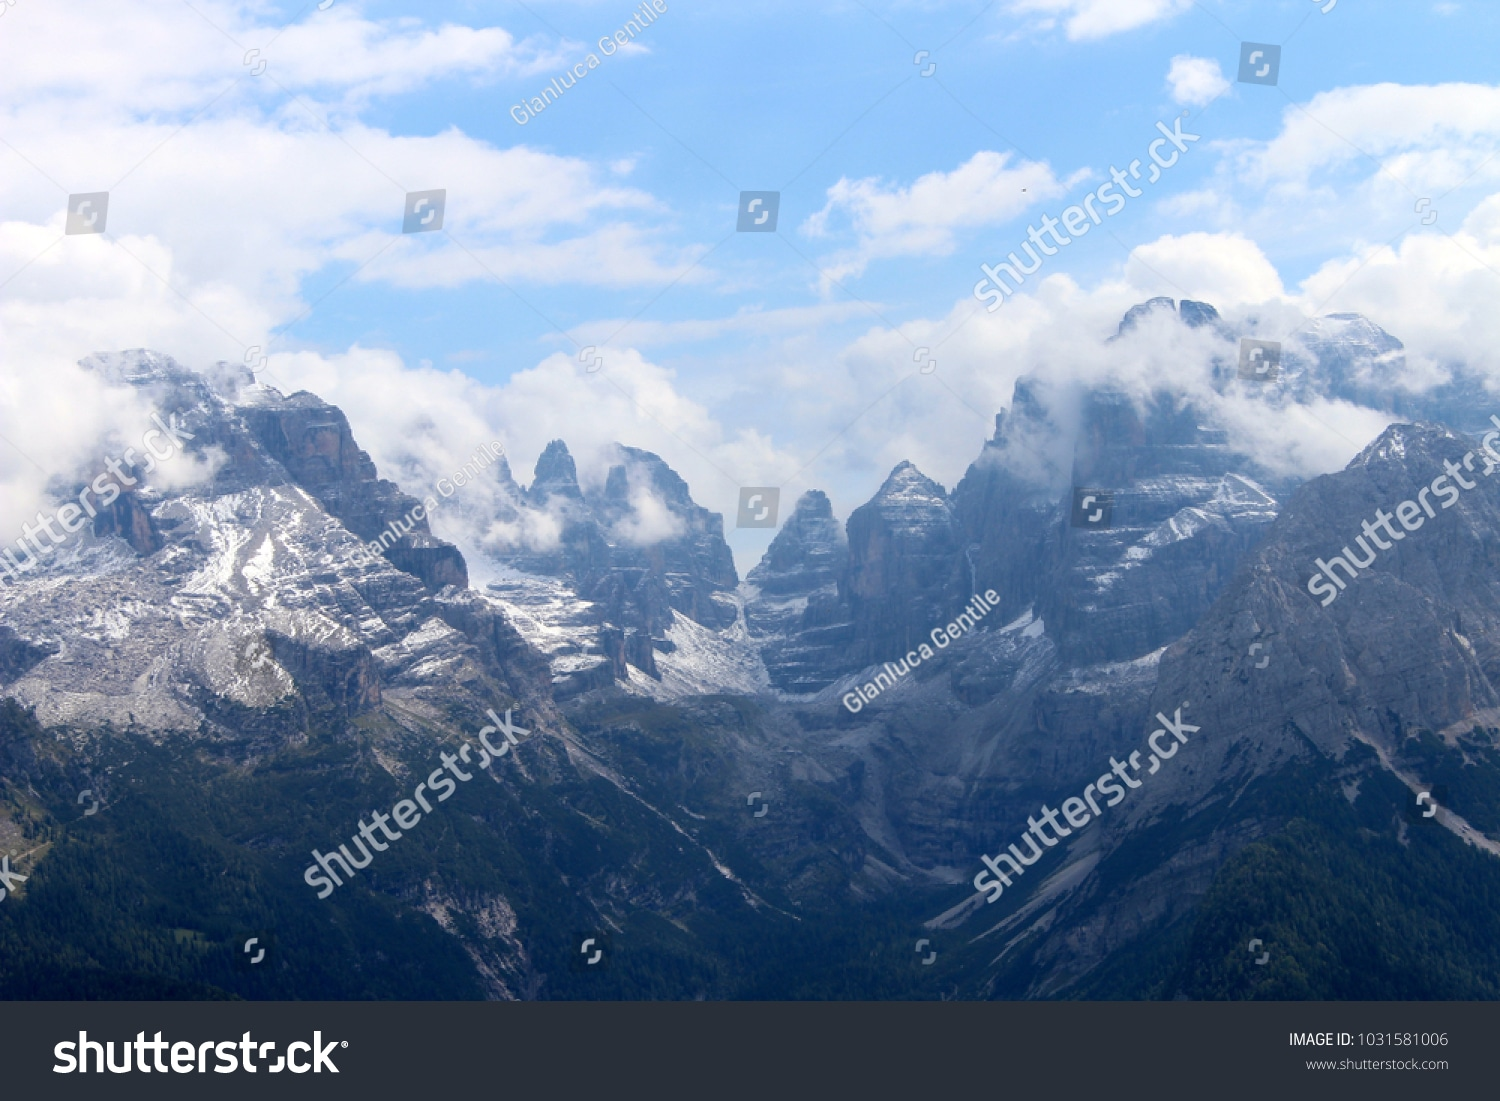 - stock photo the tallest peaks of the trentino unbelievable sight 1031581006 - The tallest peaks of the Trentino, unbelievable sight